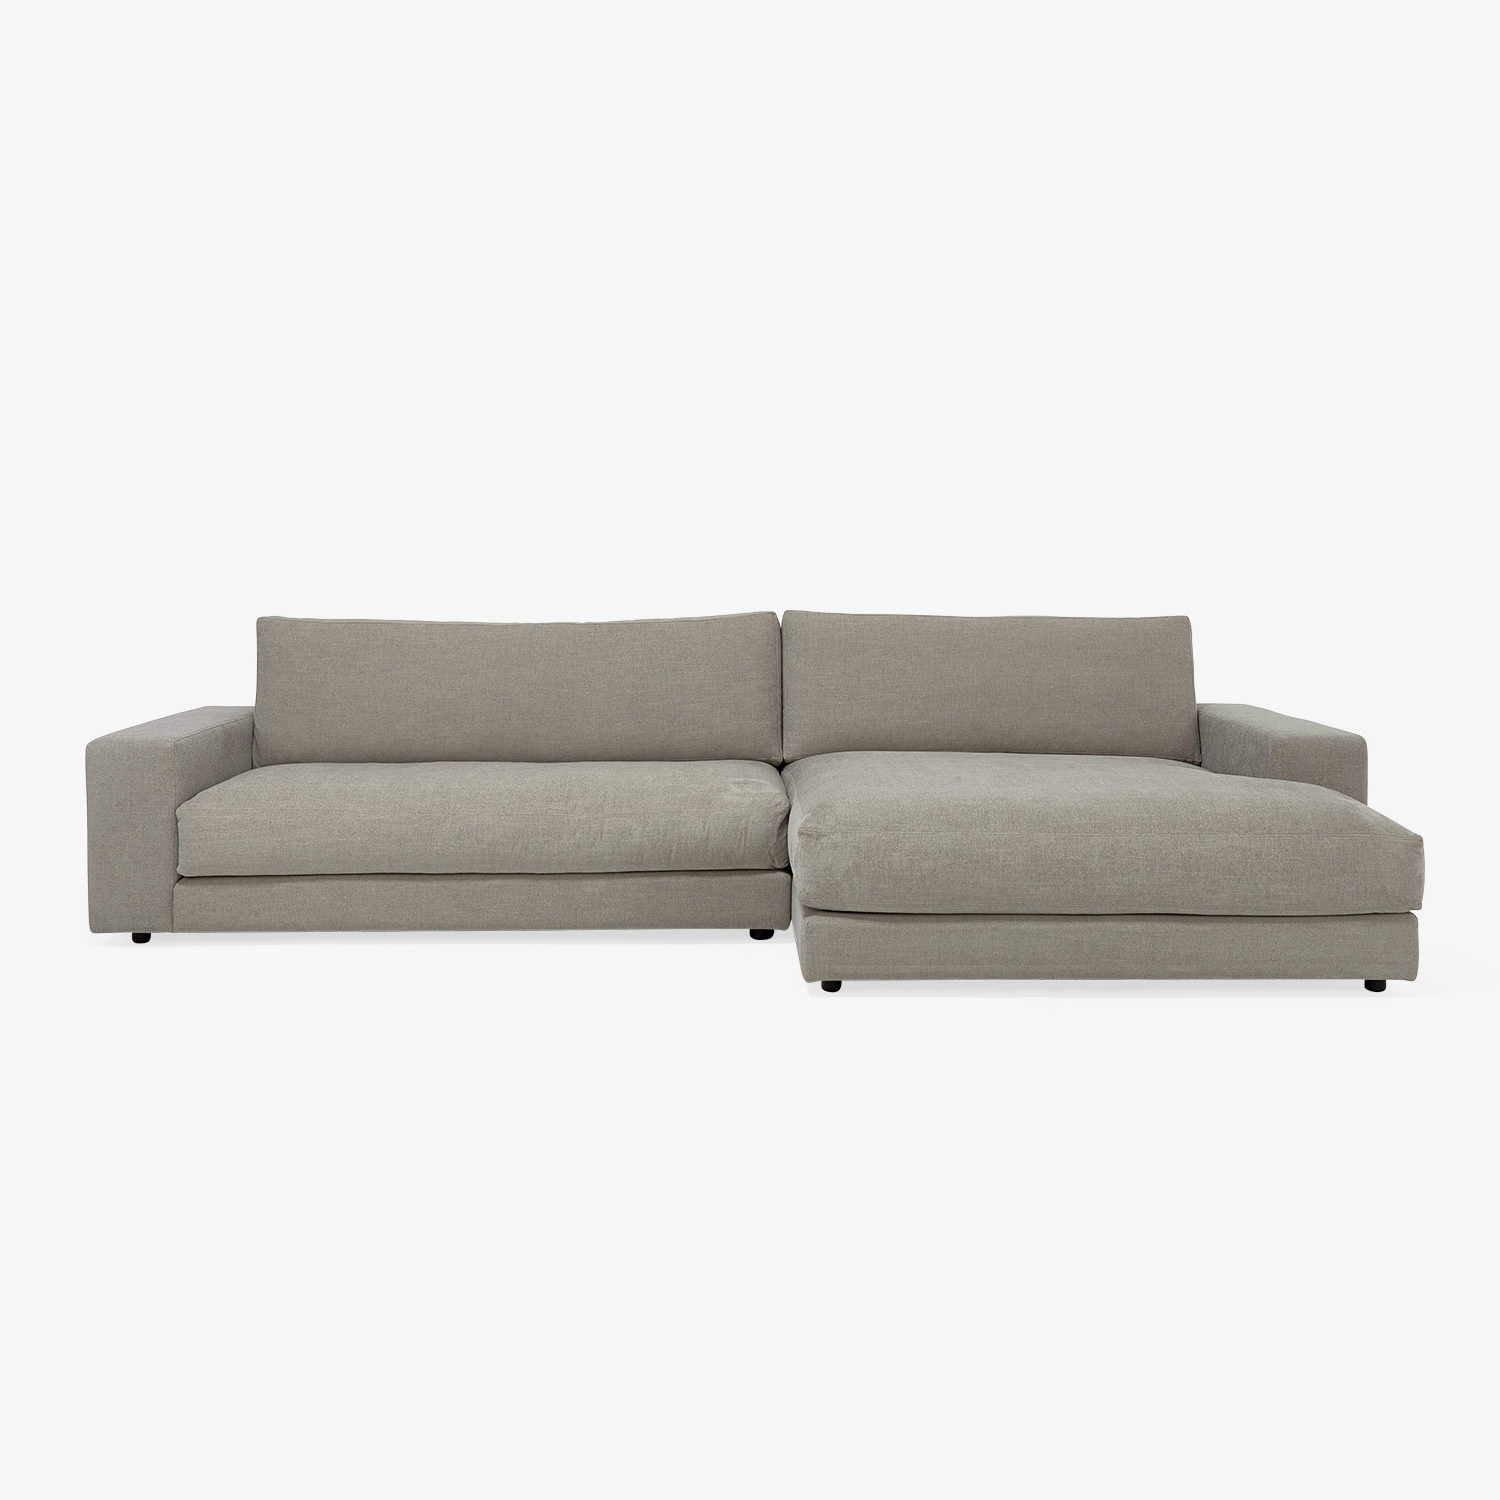 Well Known Kingston Sectional Sofas Regarding Modern Sectional Sofas For Nyc Apartments At Abc Home (View 12 of 20)